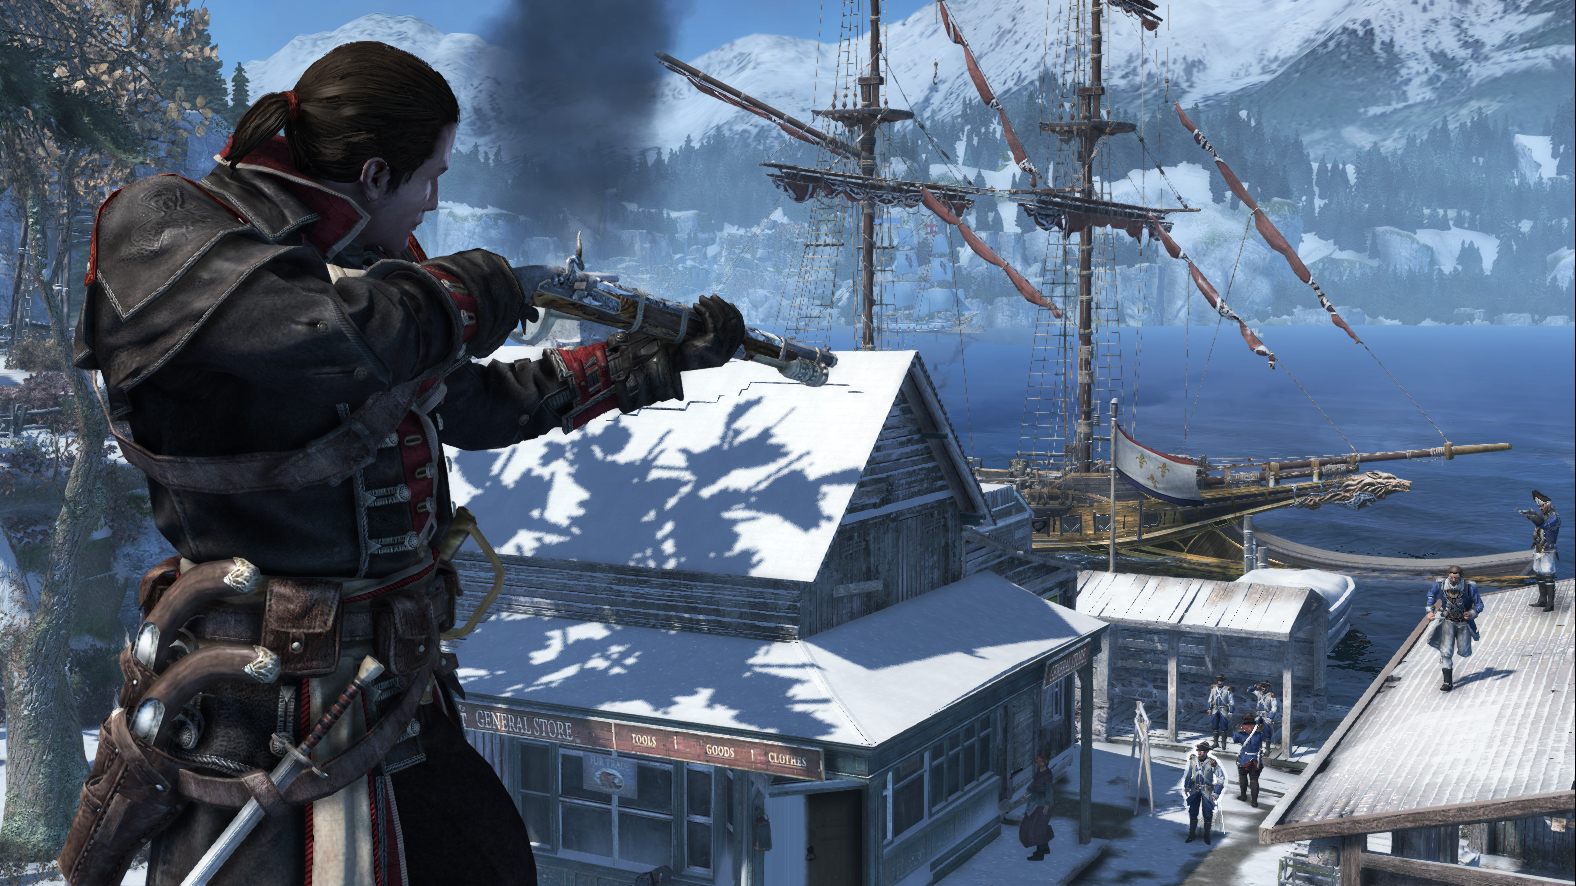 download assassin's creed rogue singlelink iso free for pc codex release hi2u cpy skidrow reloaded gog games cracked by 3dm prophet multi language full version 2017 gratis